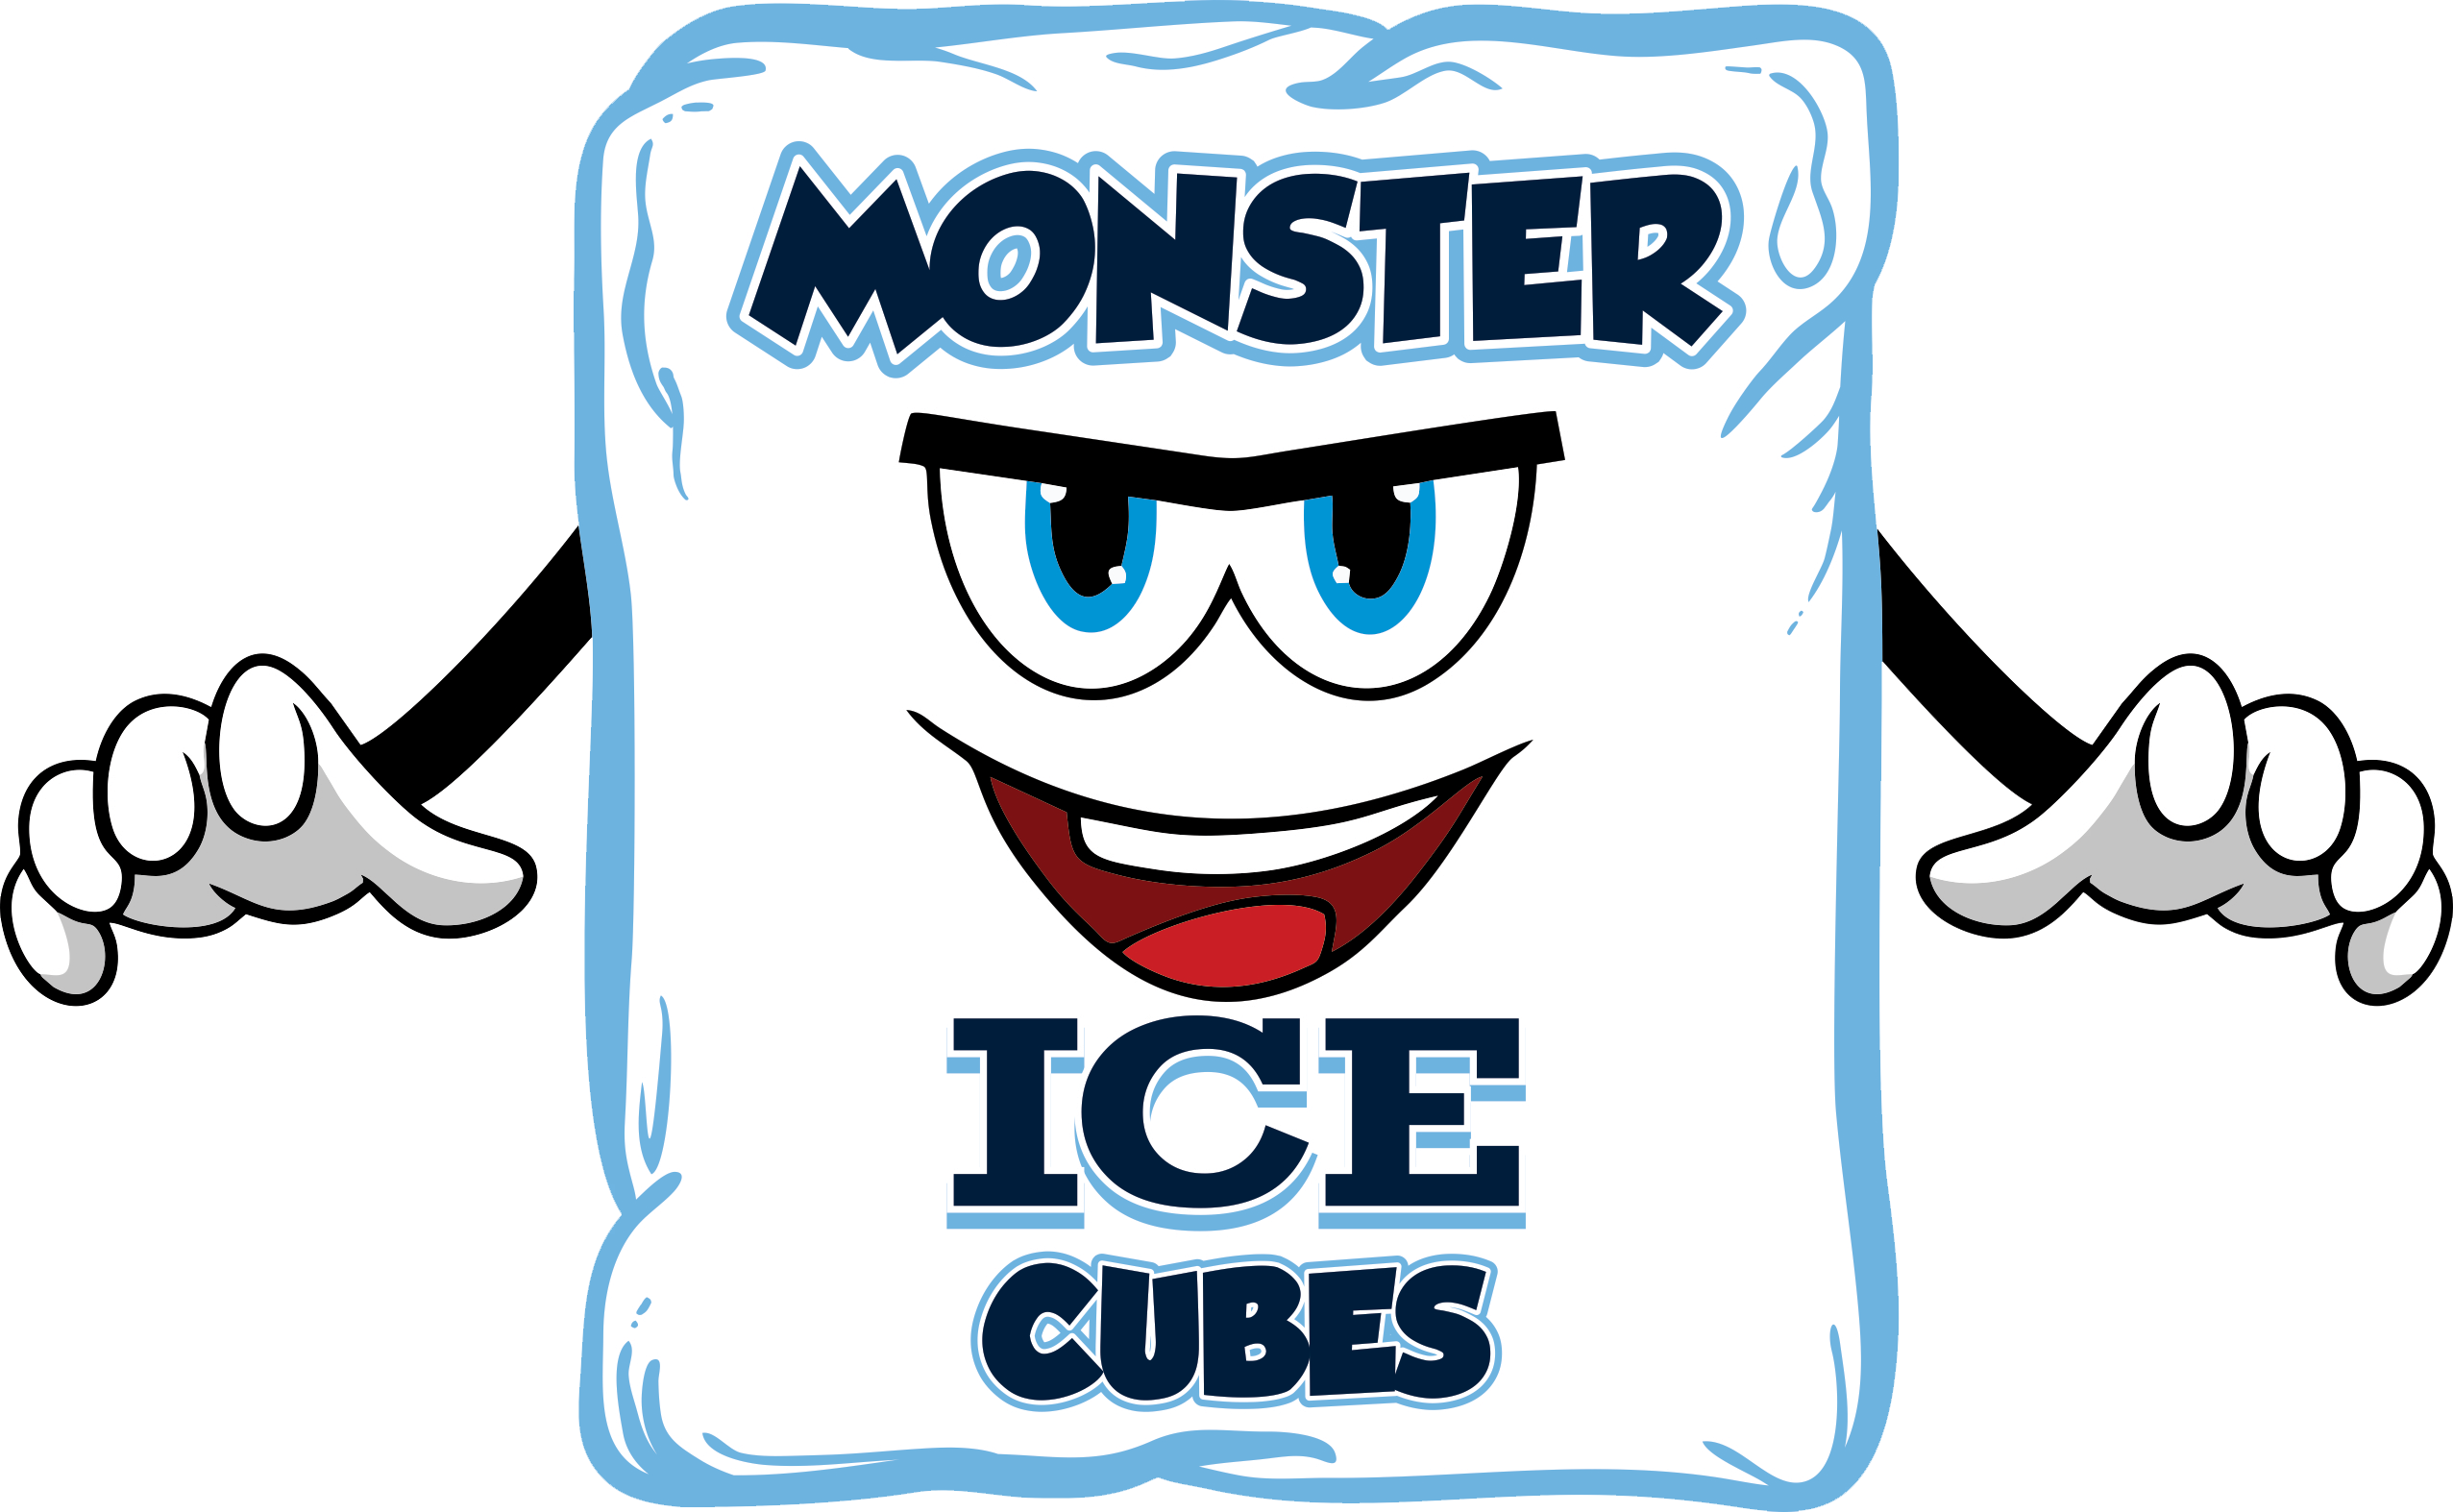 Monster Ice Cubes